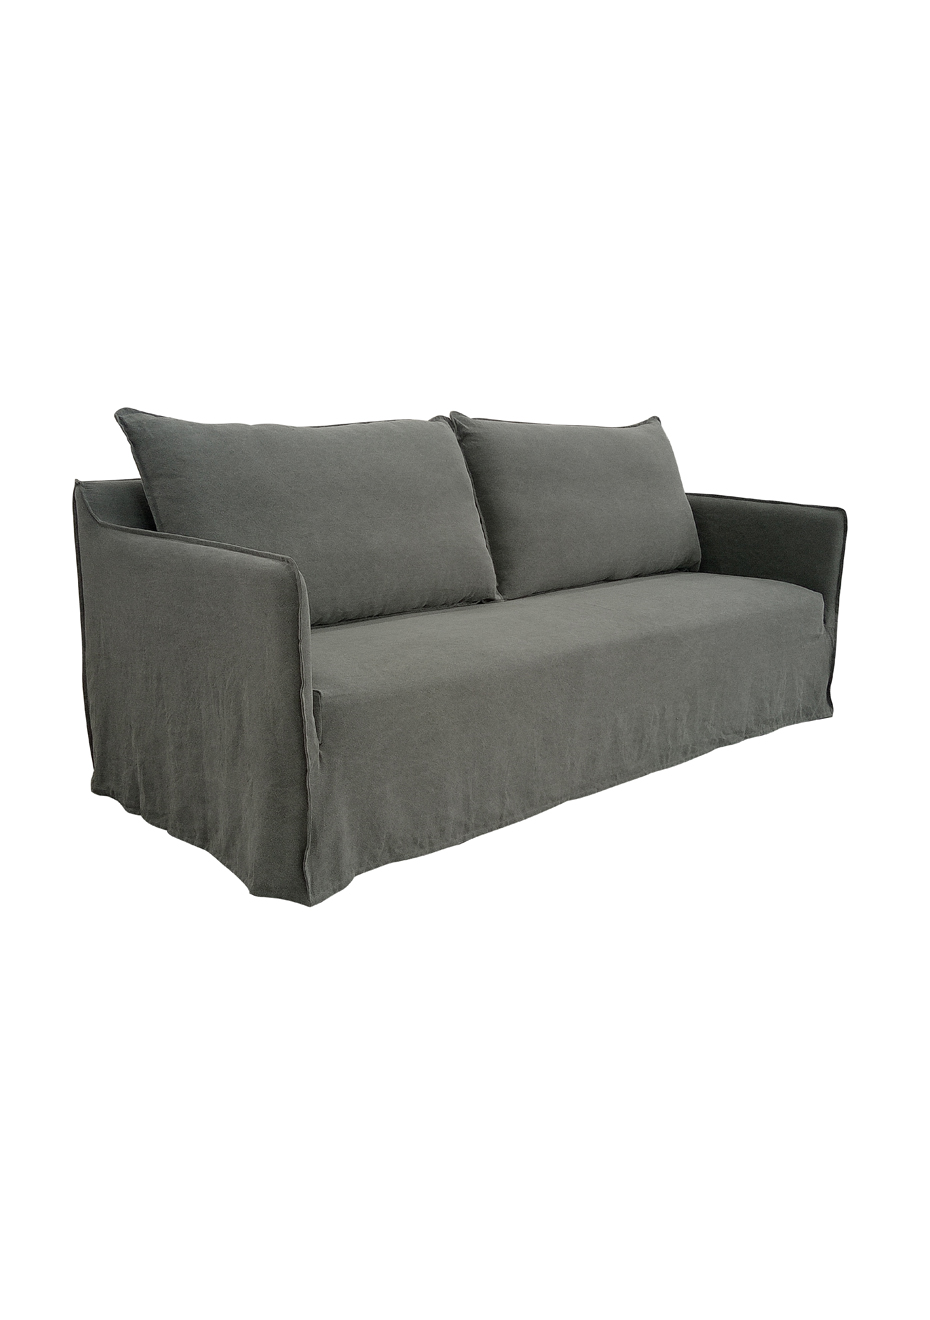 luxe 2 seat sofa slipcover charity collection edinburgh george st 100 linen seater grey sofas by presale onceit